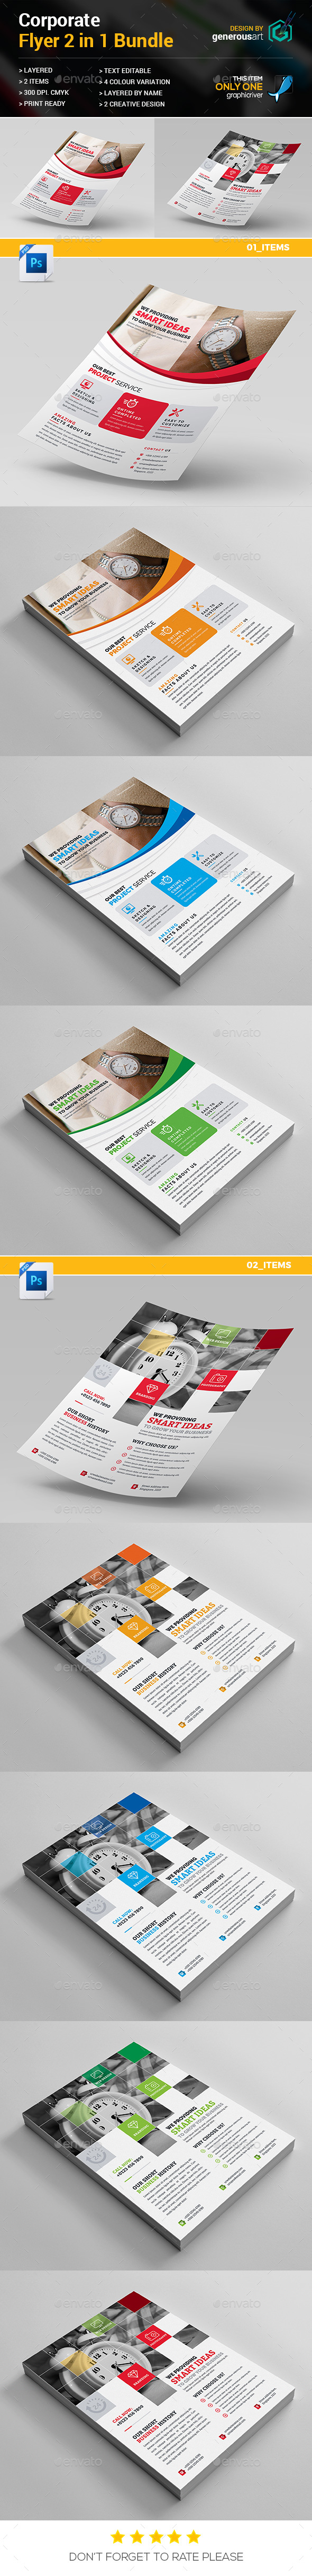 Business Flyer Bundle 2 in 1 - Corporate Flyers